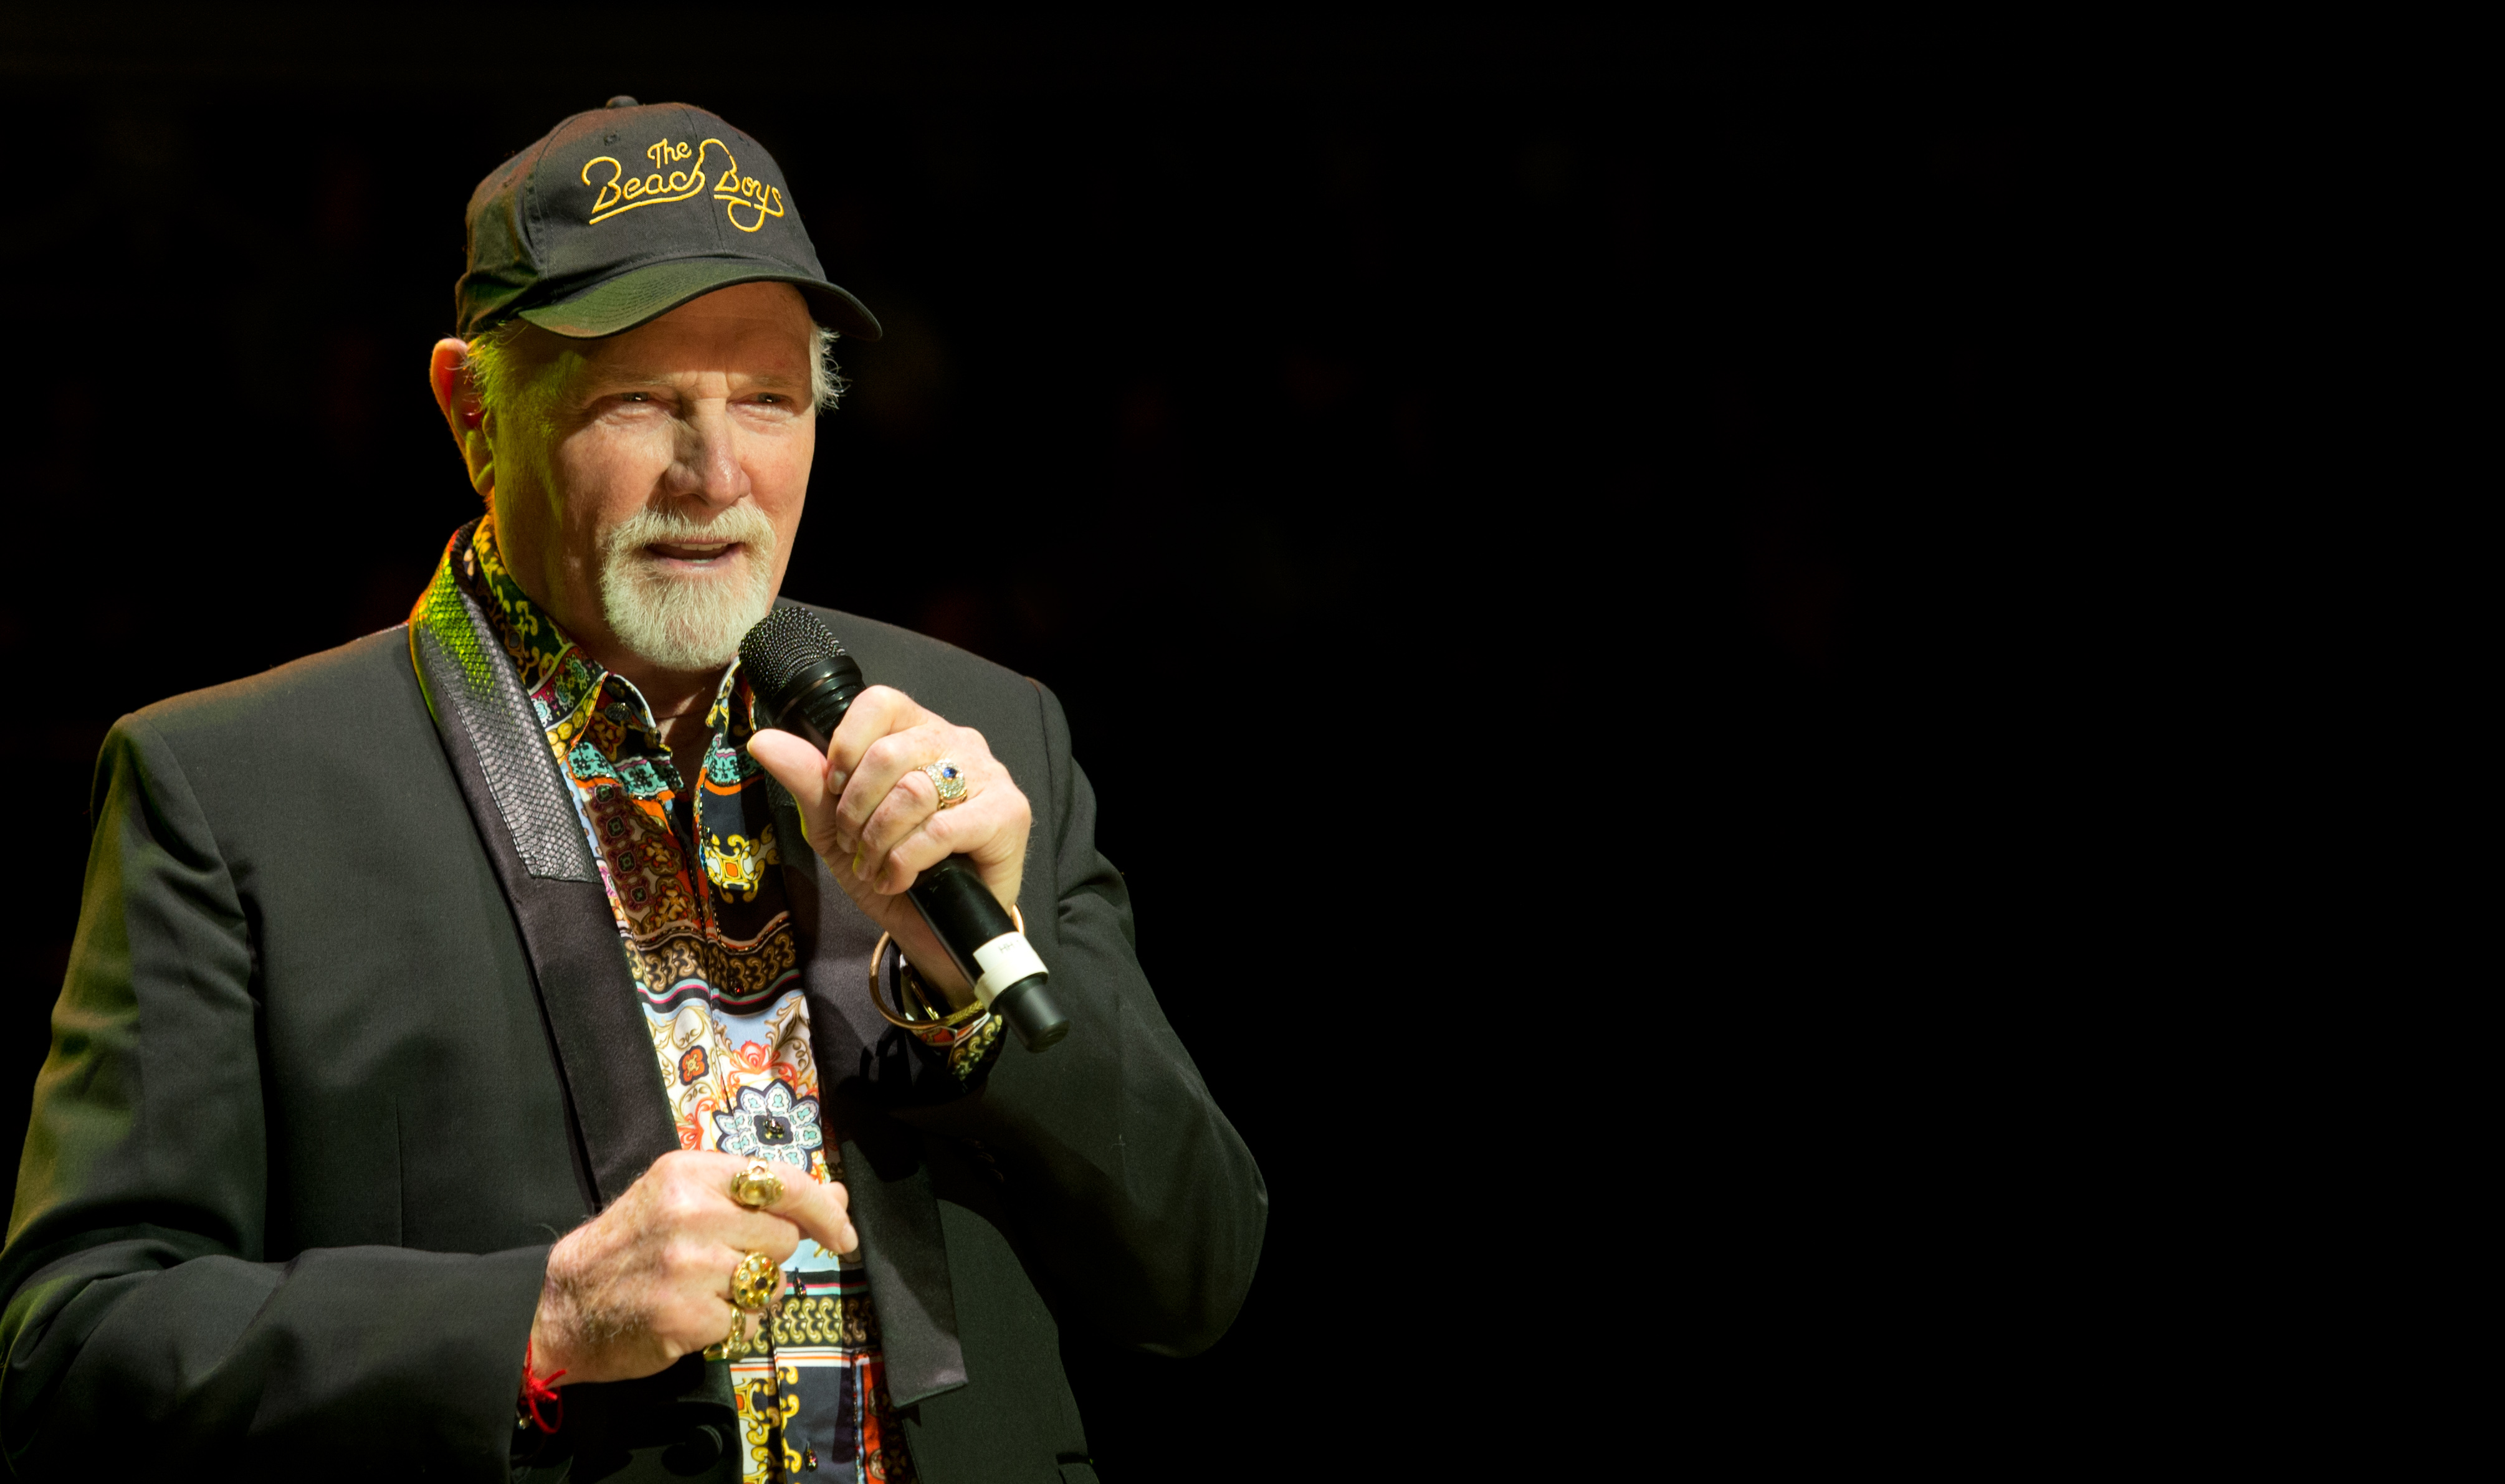 the beach boys mike love has dug up and revamped an old yuletide bootleg the bittersweet holiday cut youll never be alone on christmas day - Beach Boys Christmas Song